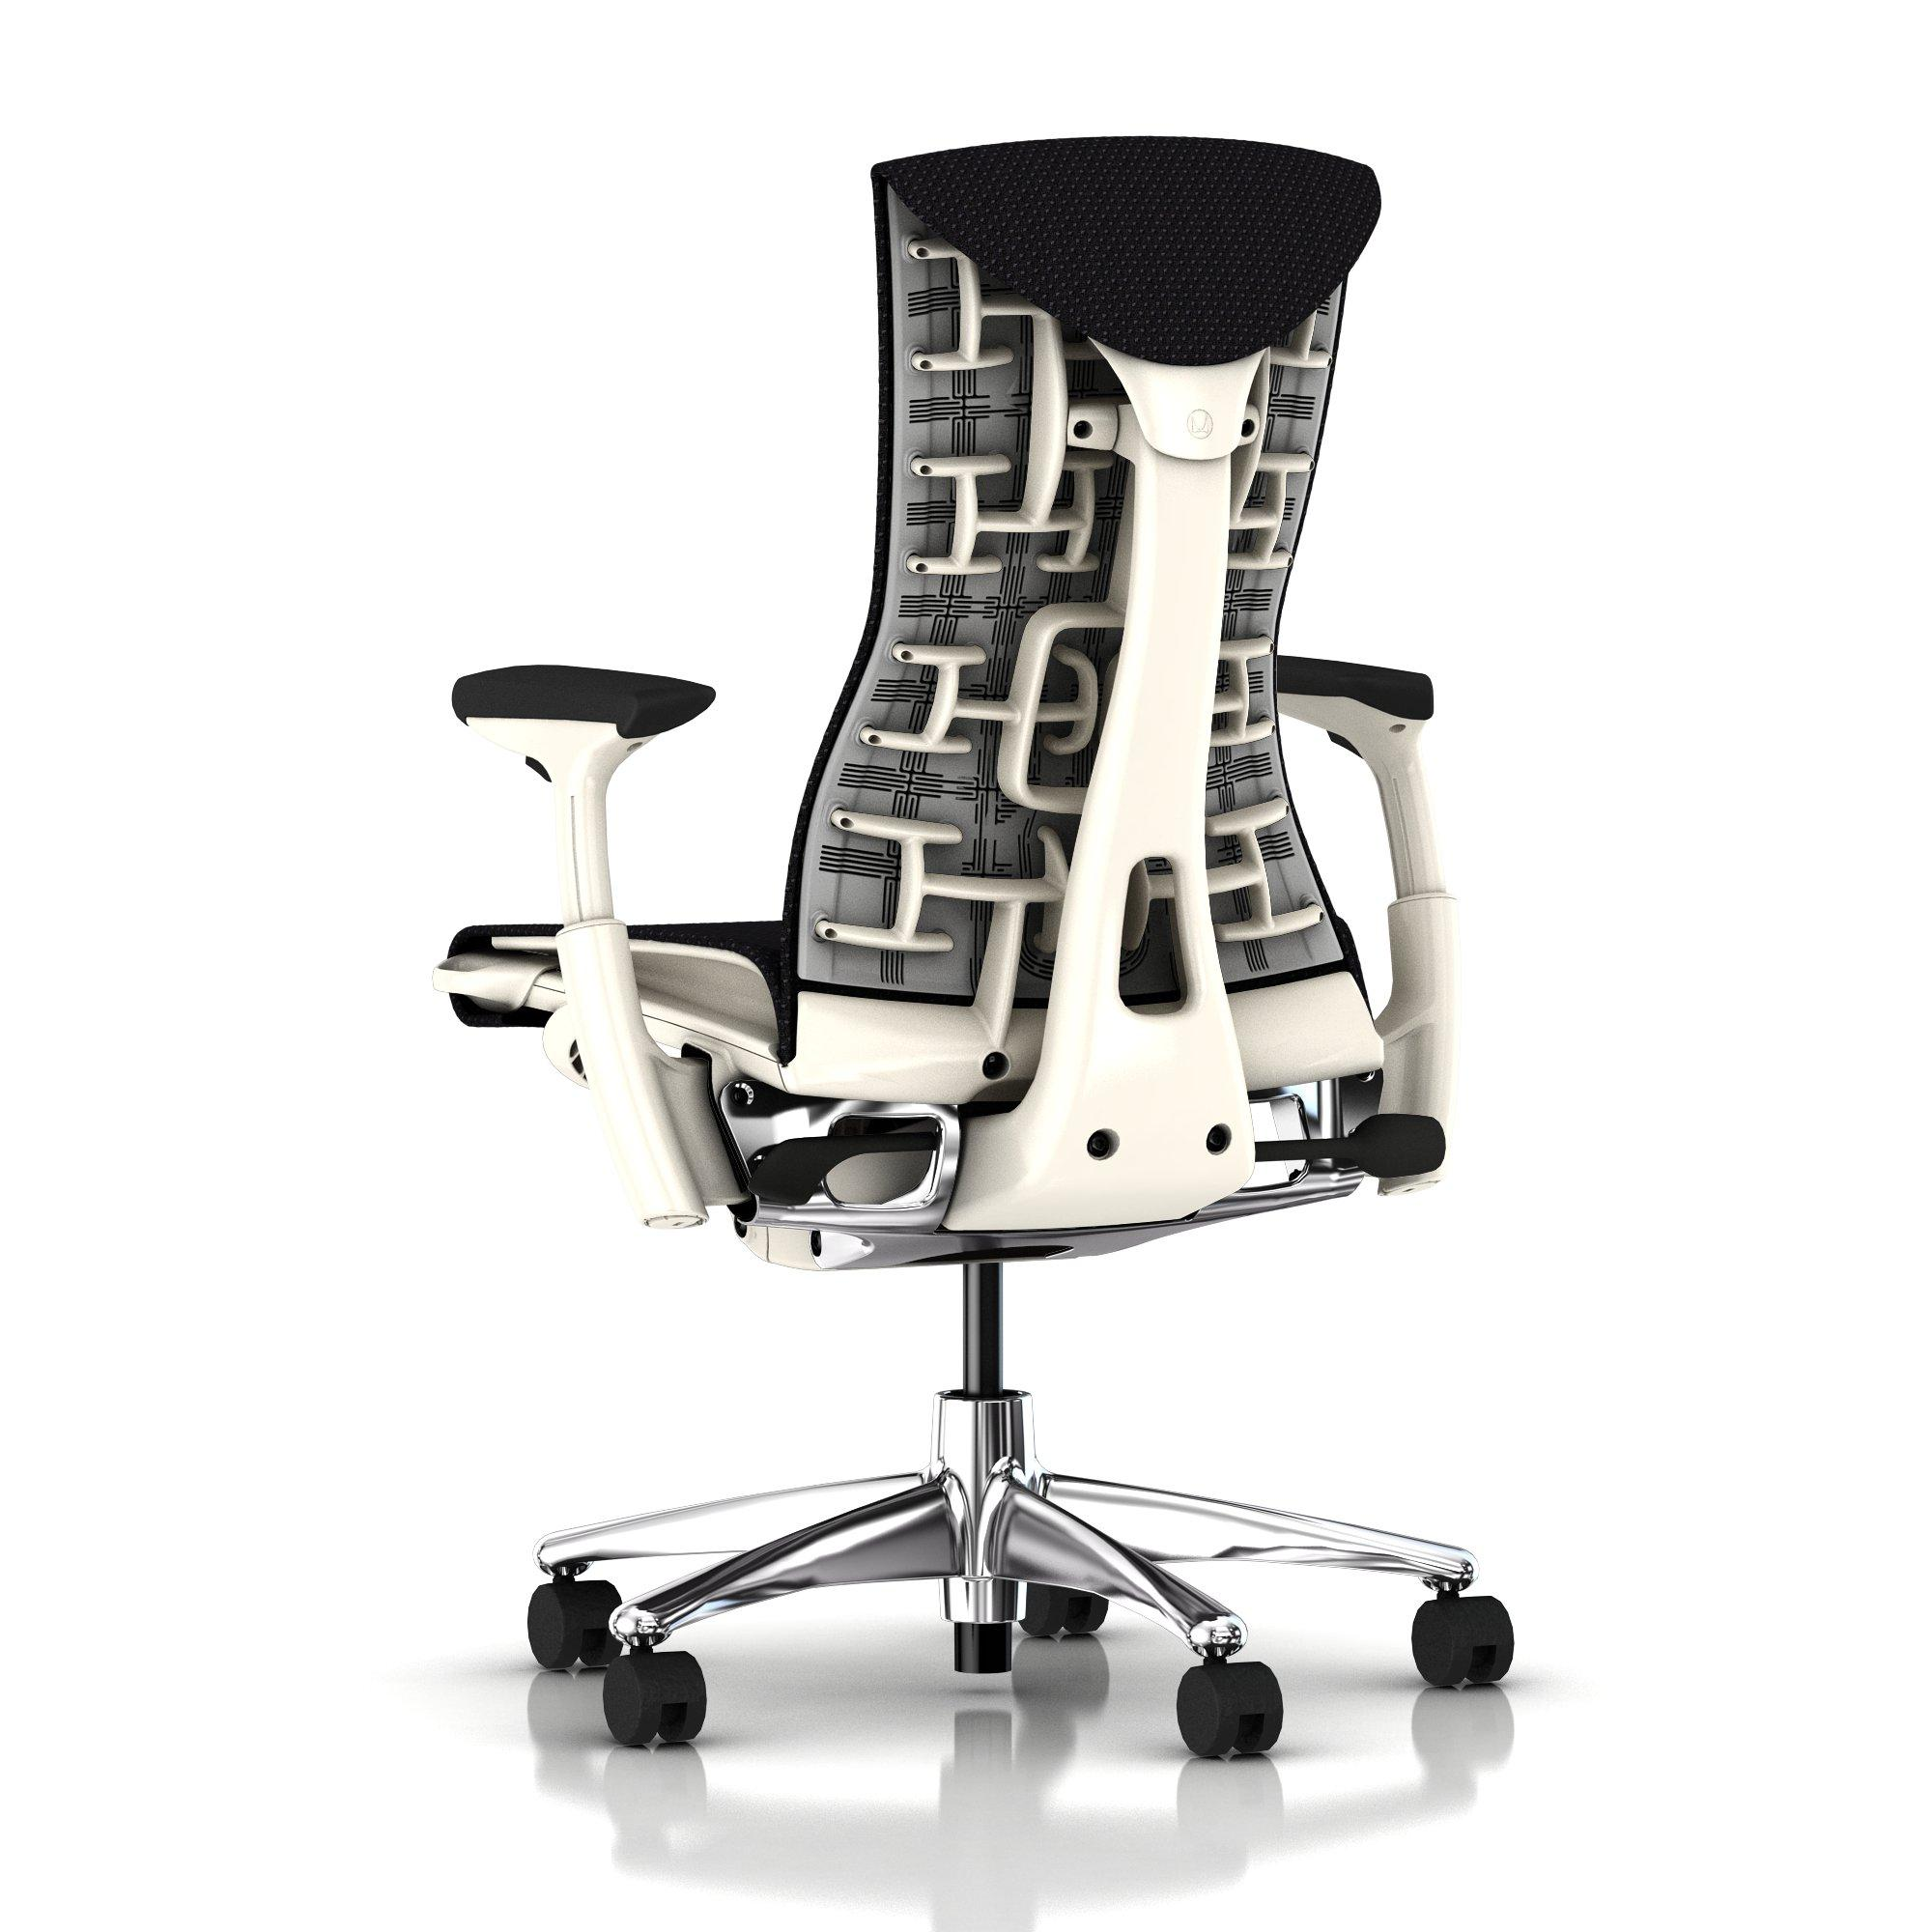 Herman Miller Embody Chair Black Balance With White Frame